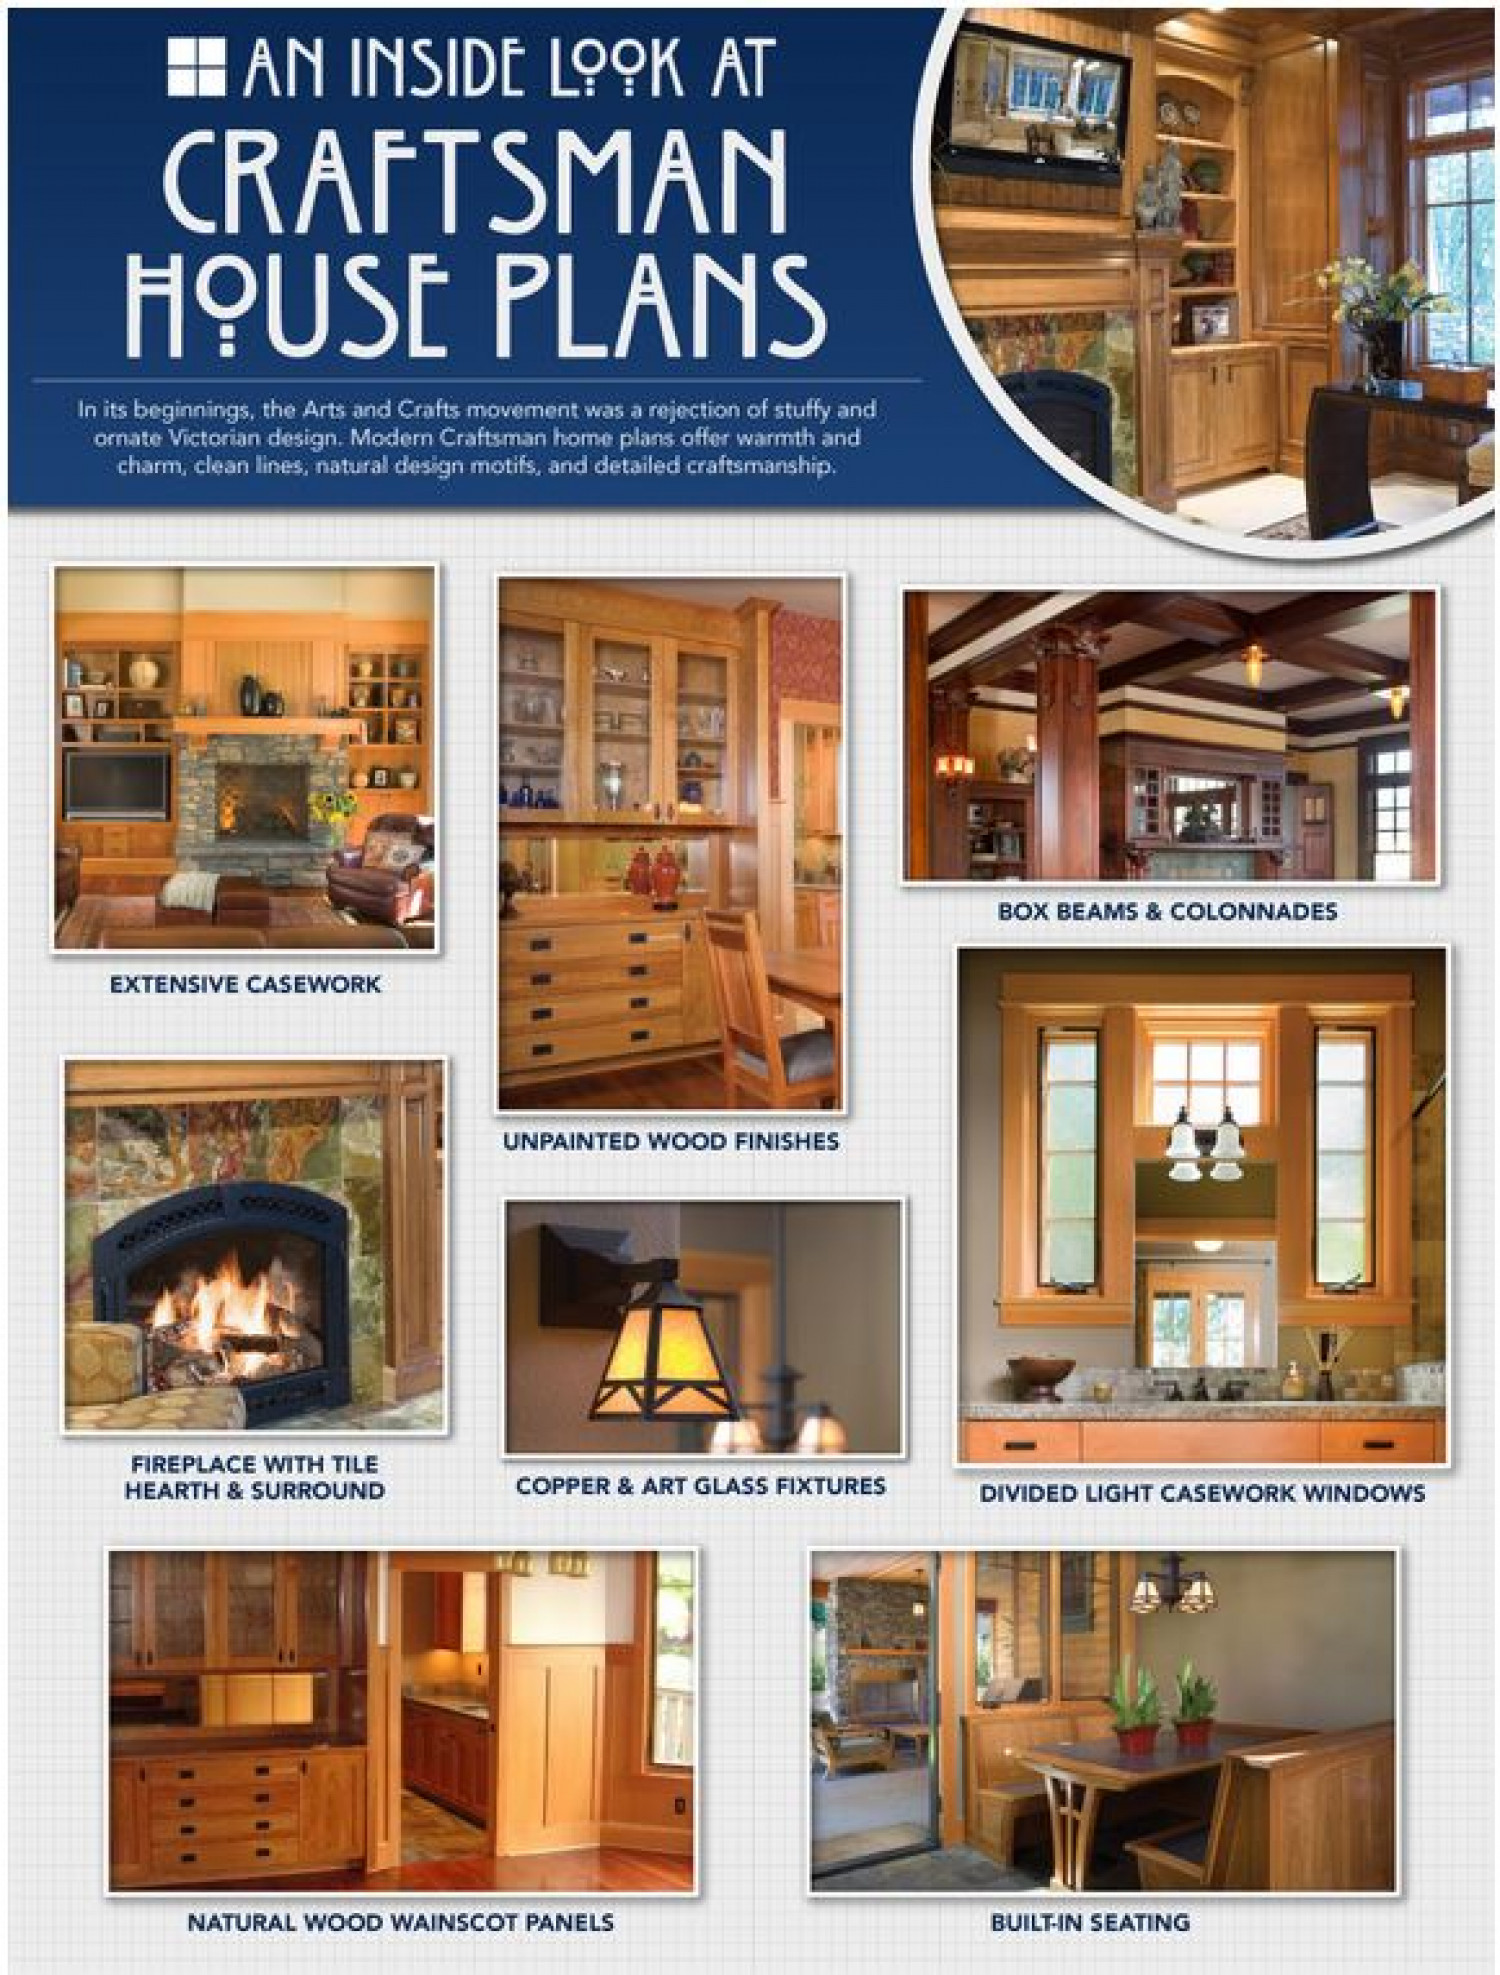 an inside look at craftsman house plans visual ly